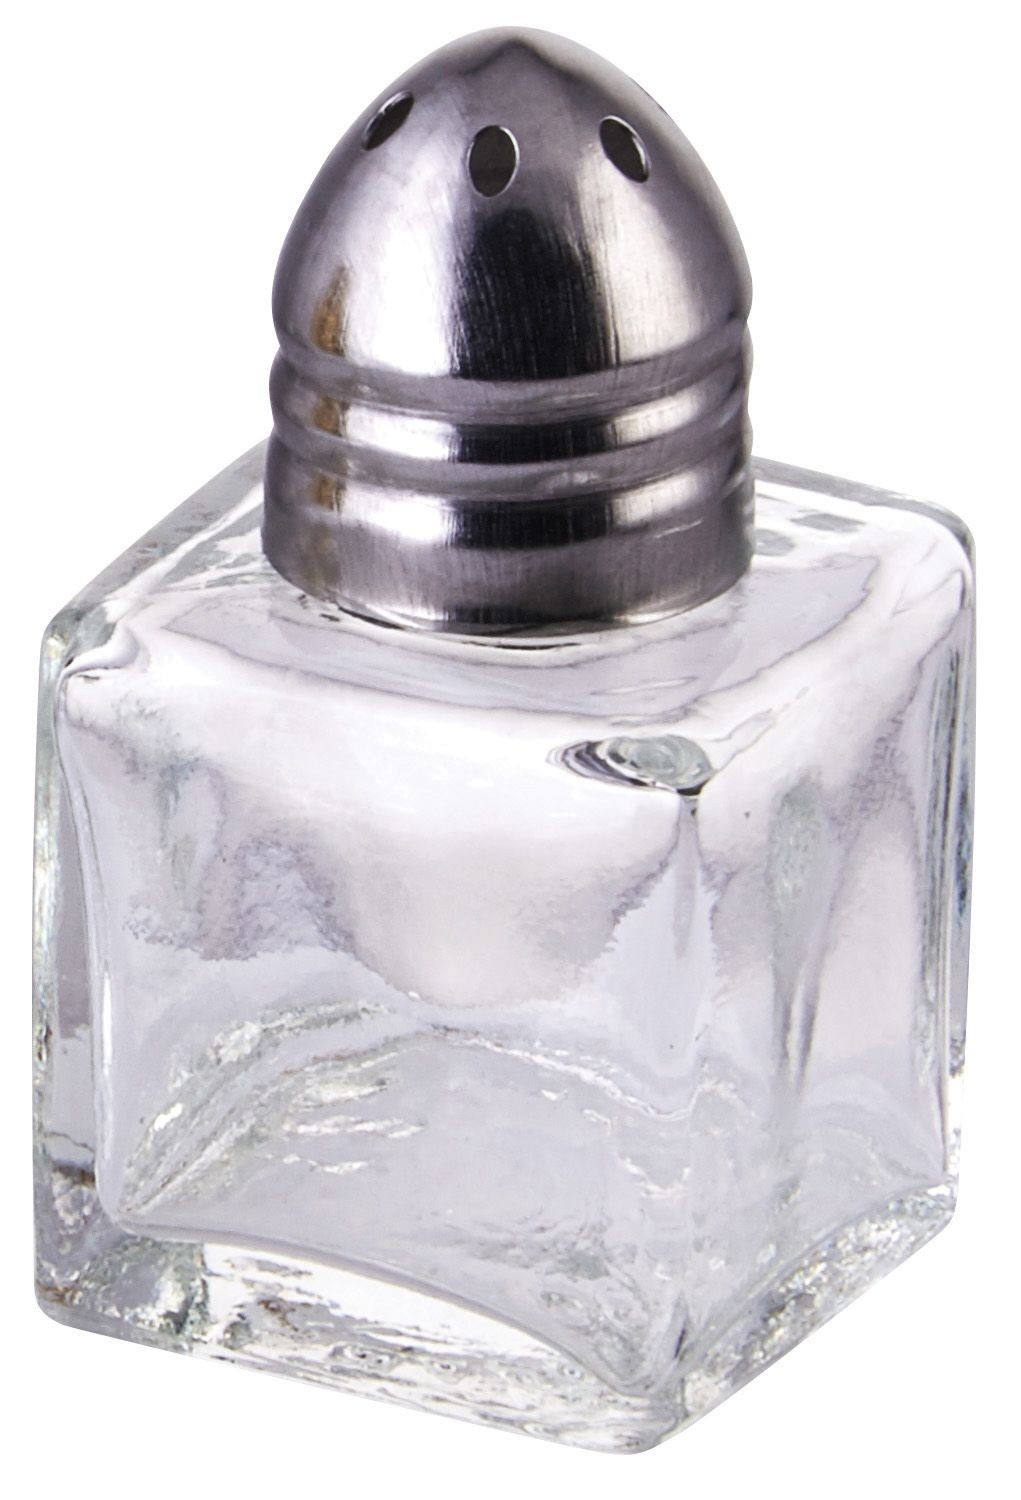 Winco g-100 Square .5 oz. Glass Salt/Pepper Shaker with Chrome Top